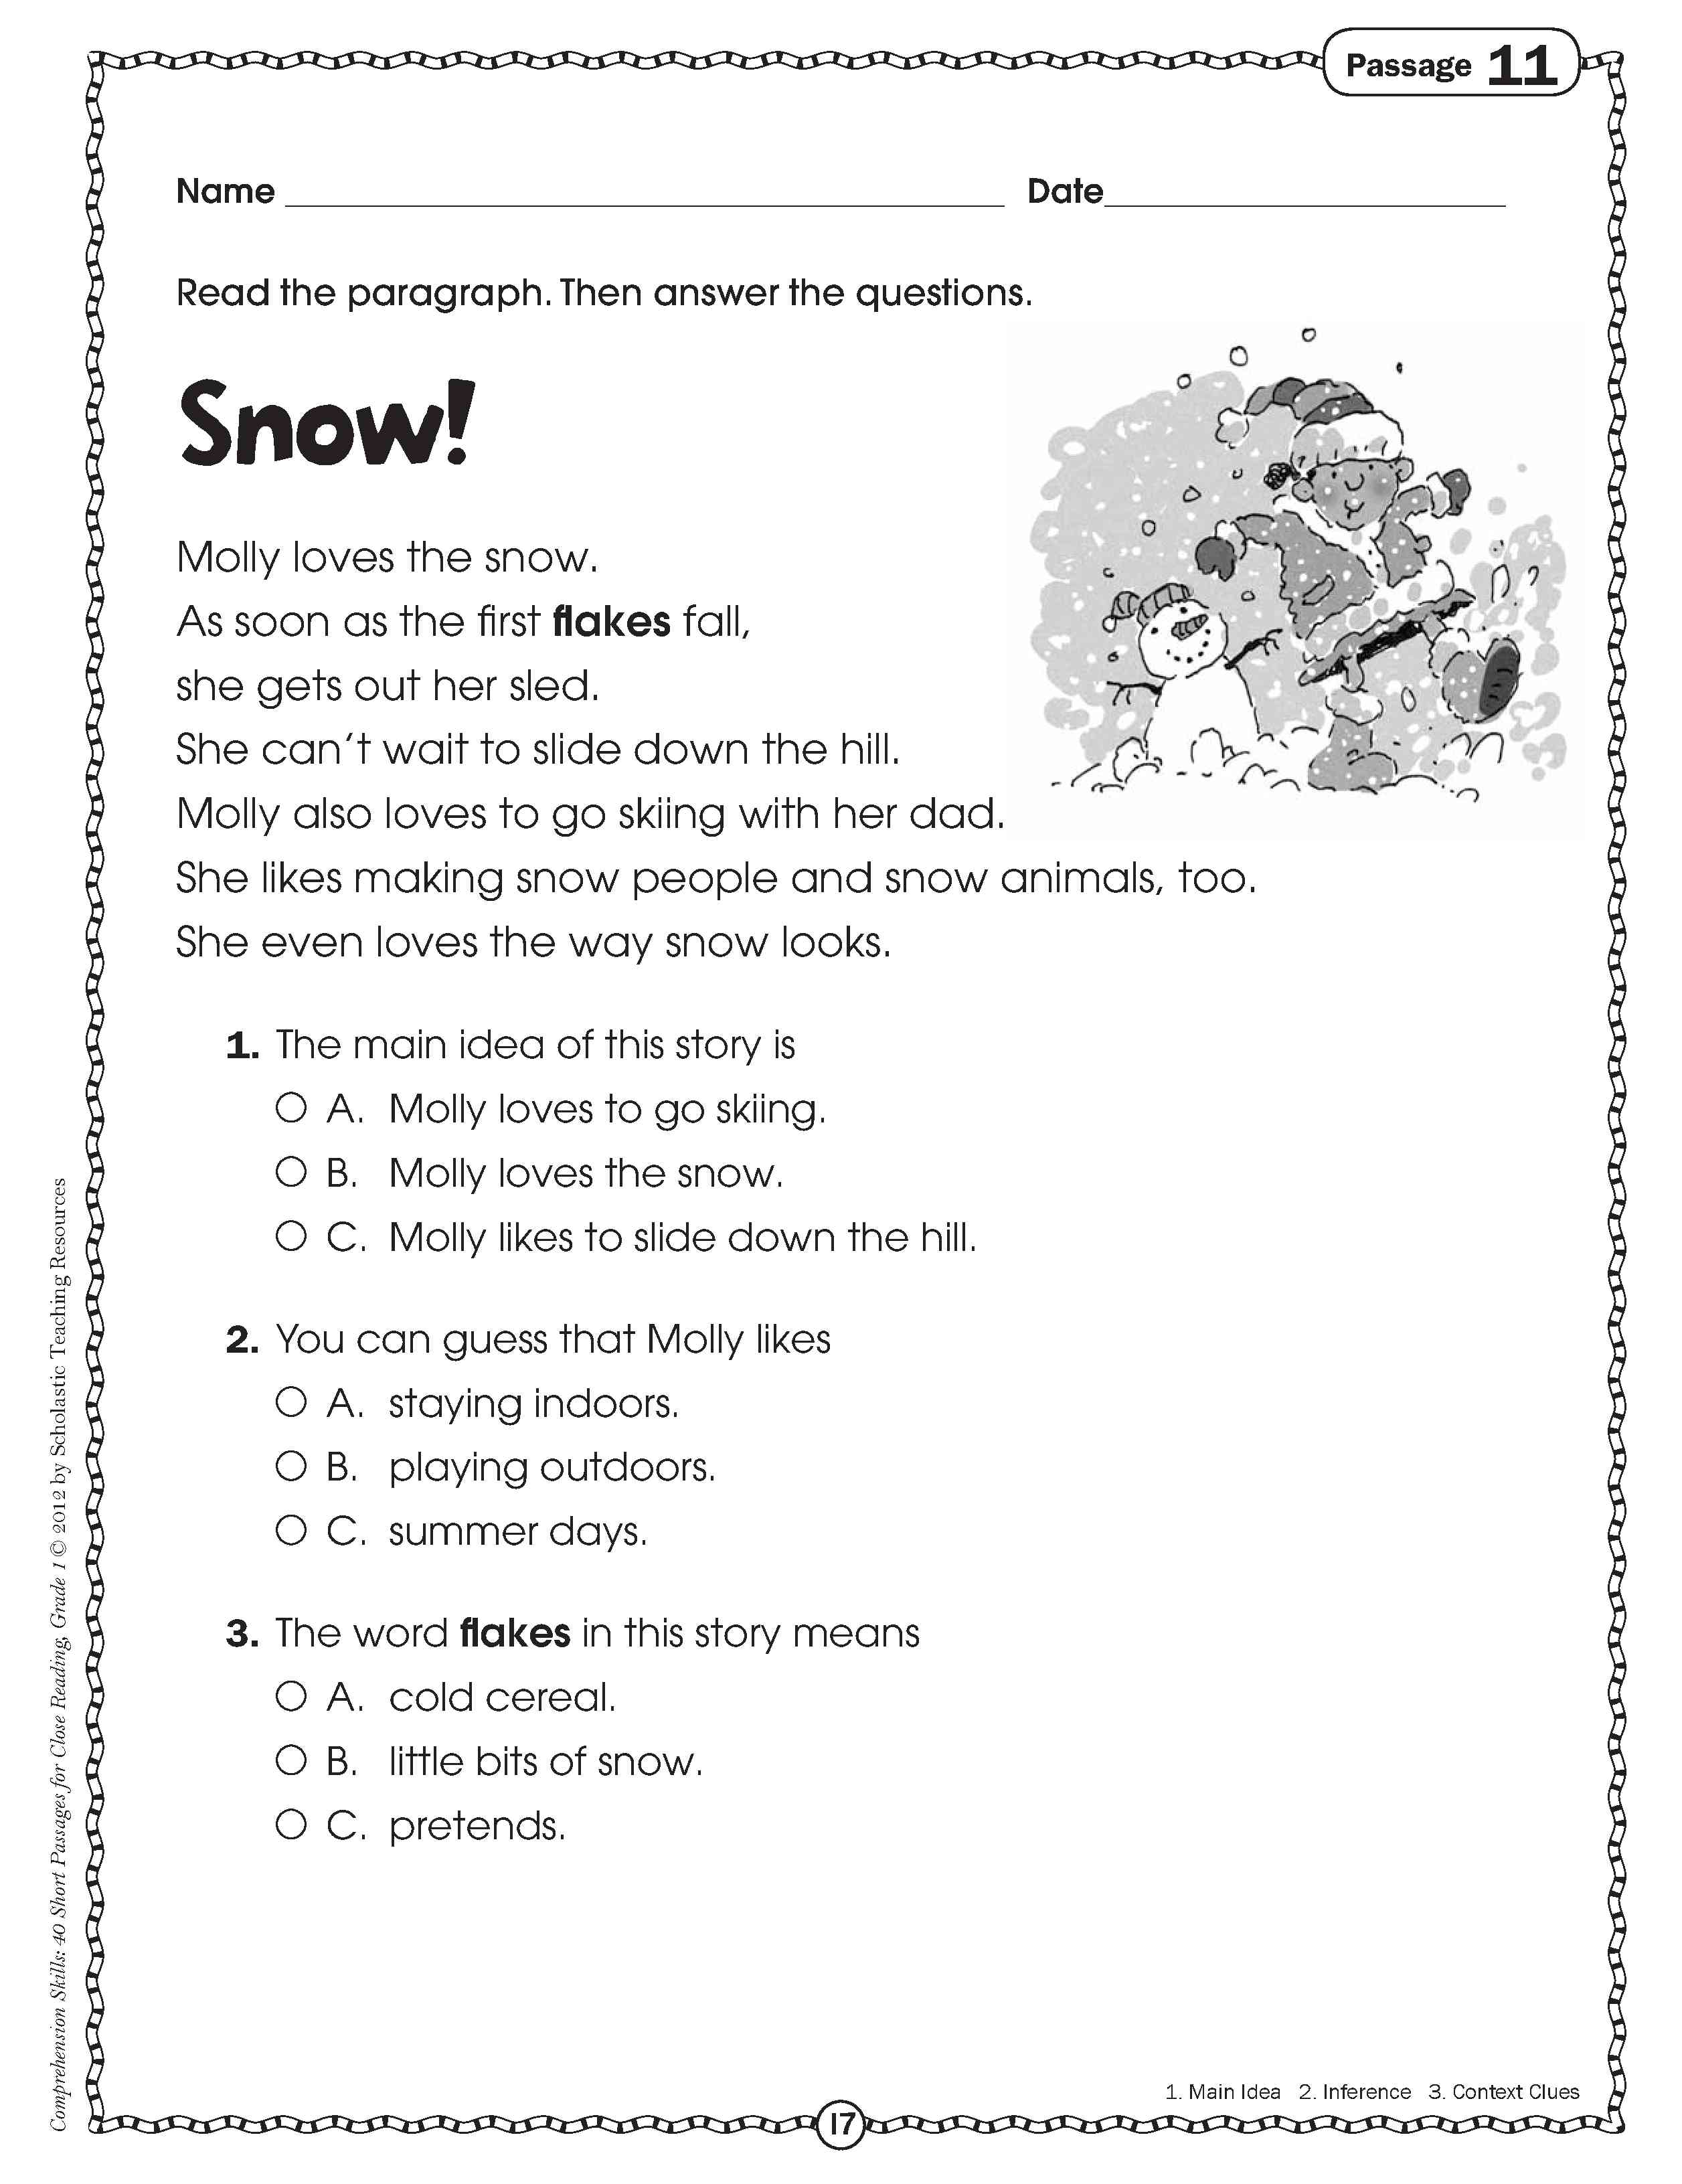 Free Worksheet Free Printable Reading Comprehension Worksheets For 4th Grade get crafty with your common core reading this holiday season simile snowflake poetry close for grade one